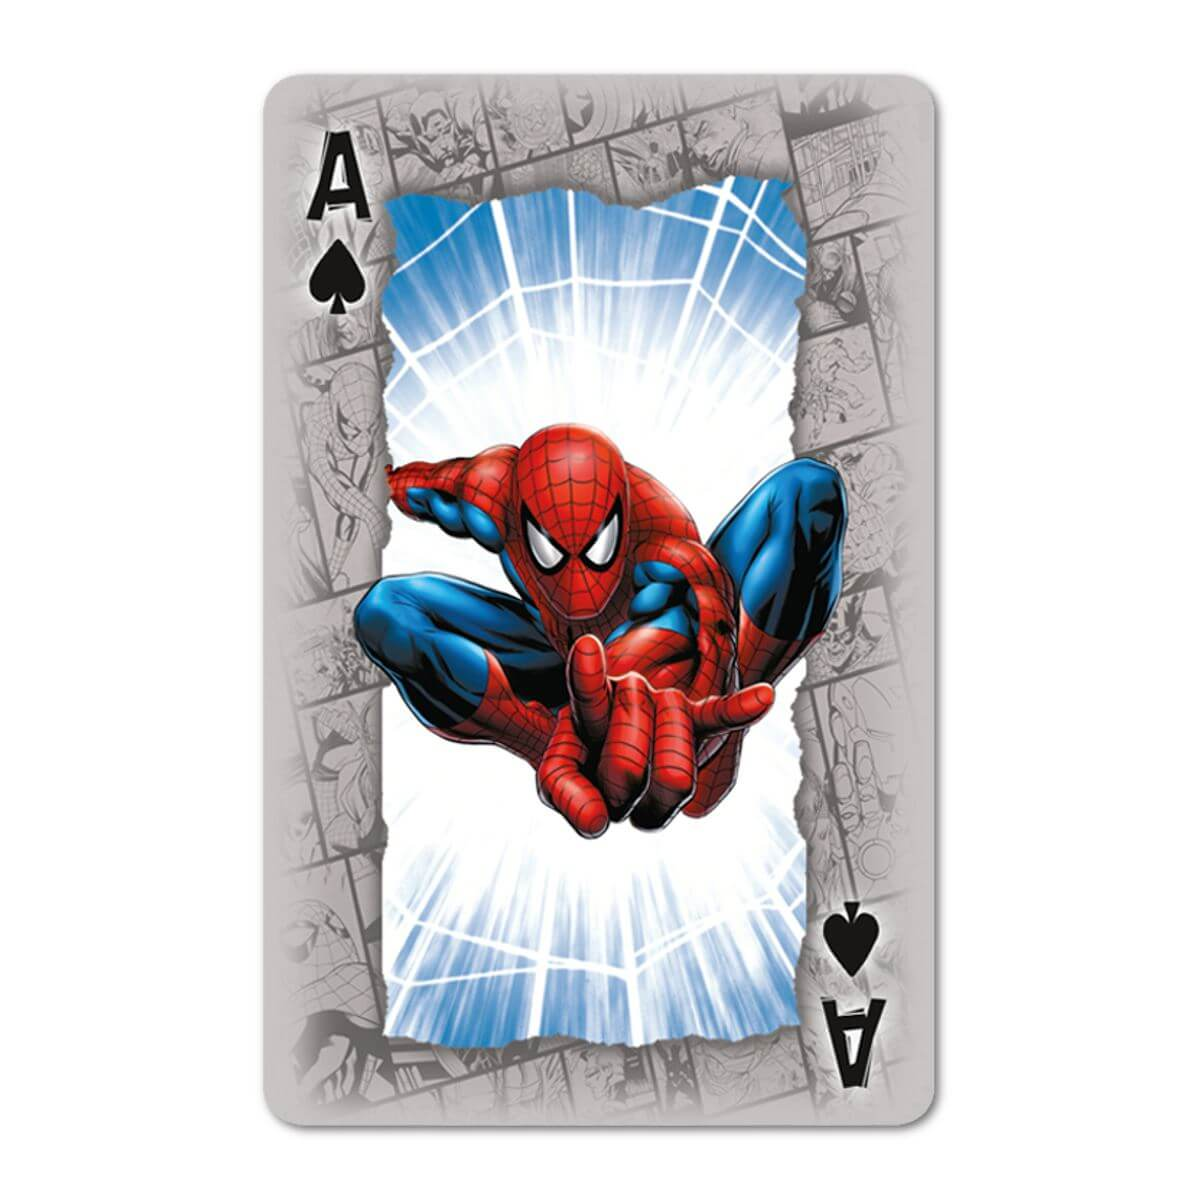 Marvel Universe Waddingtons Number 1 Playing Cards